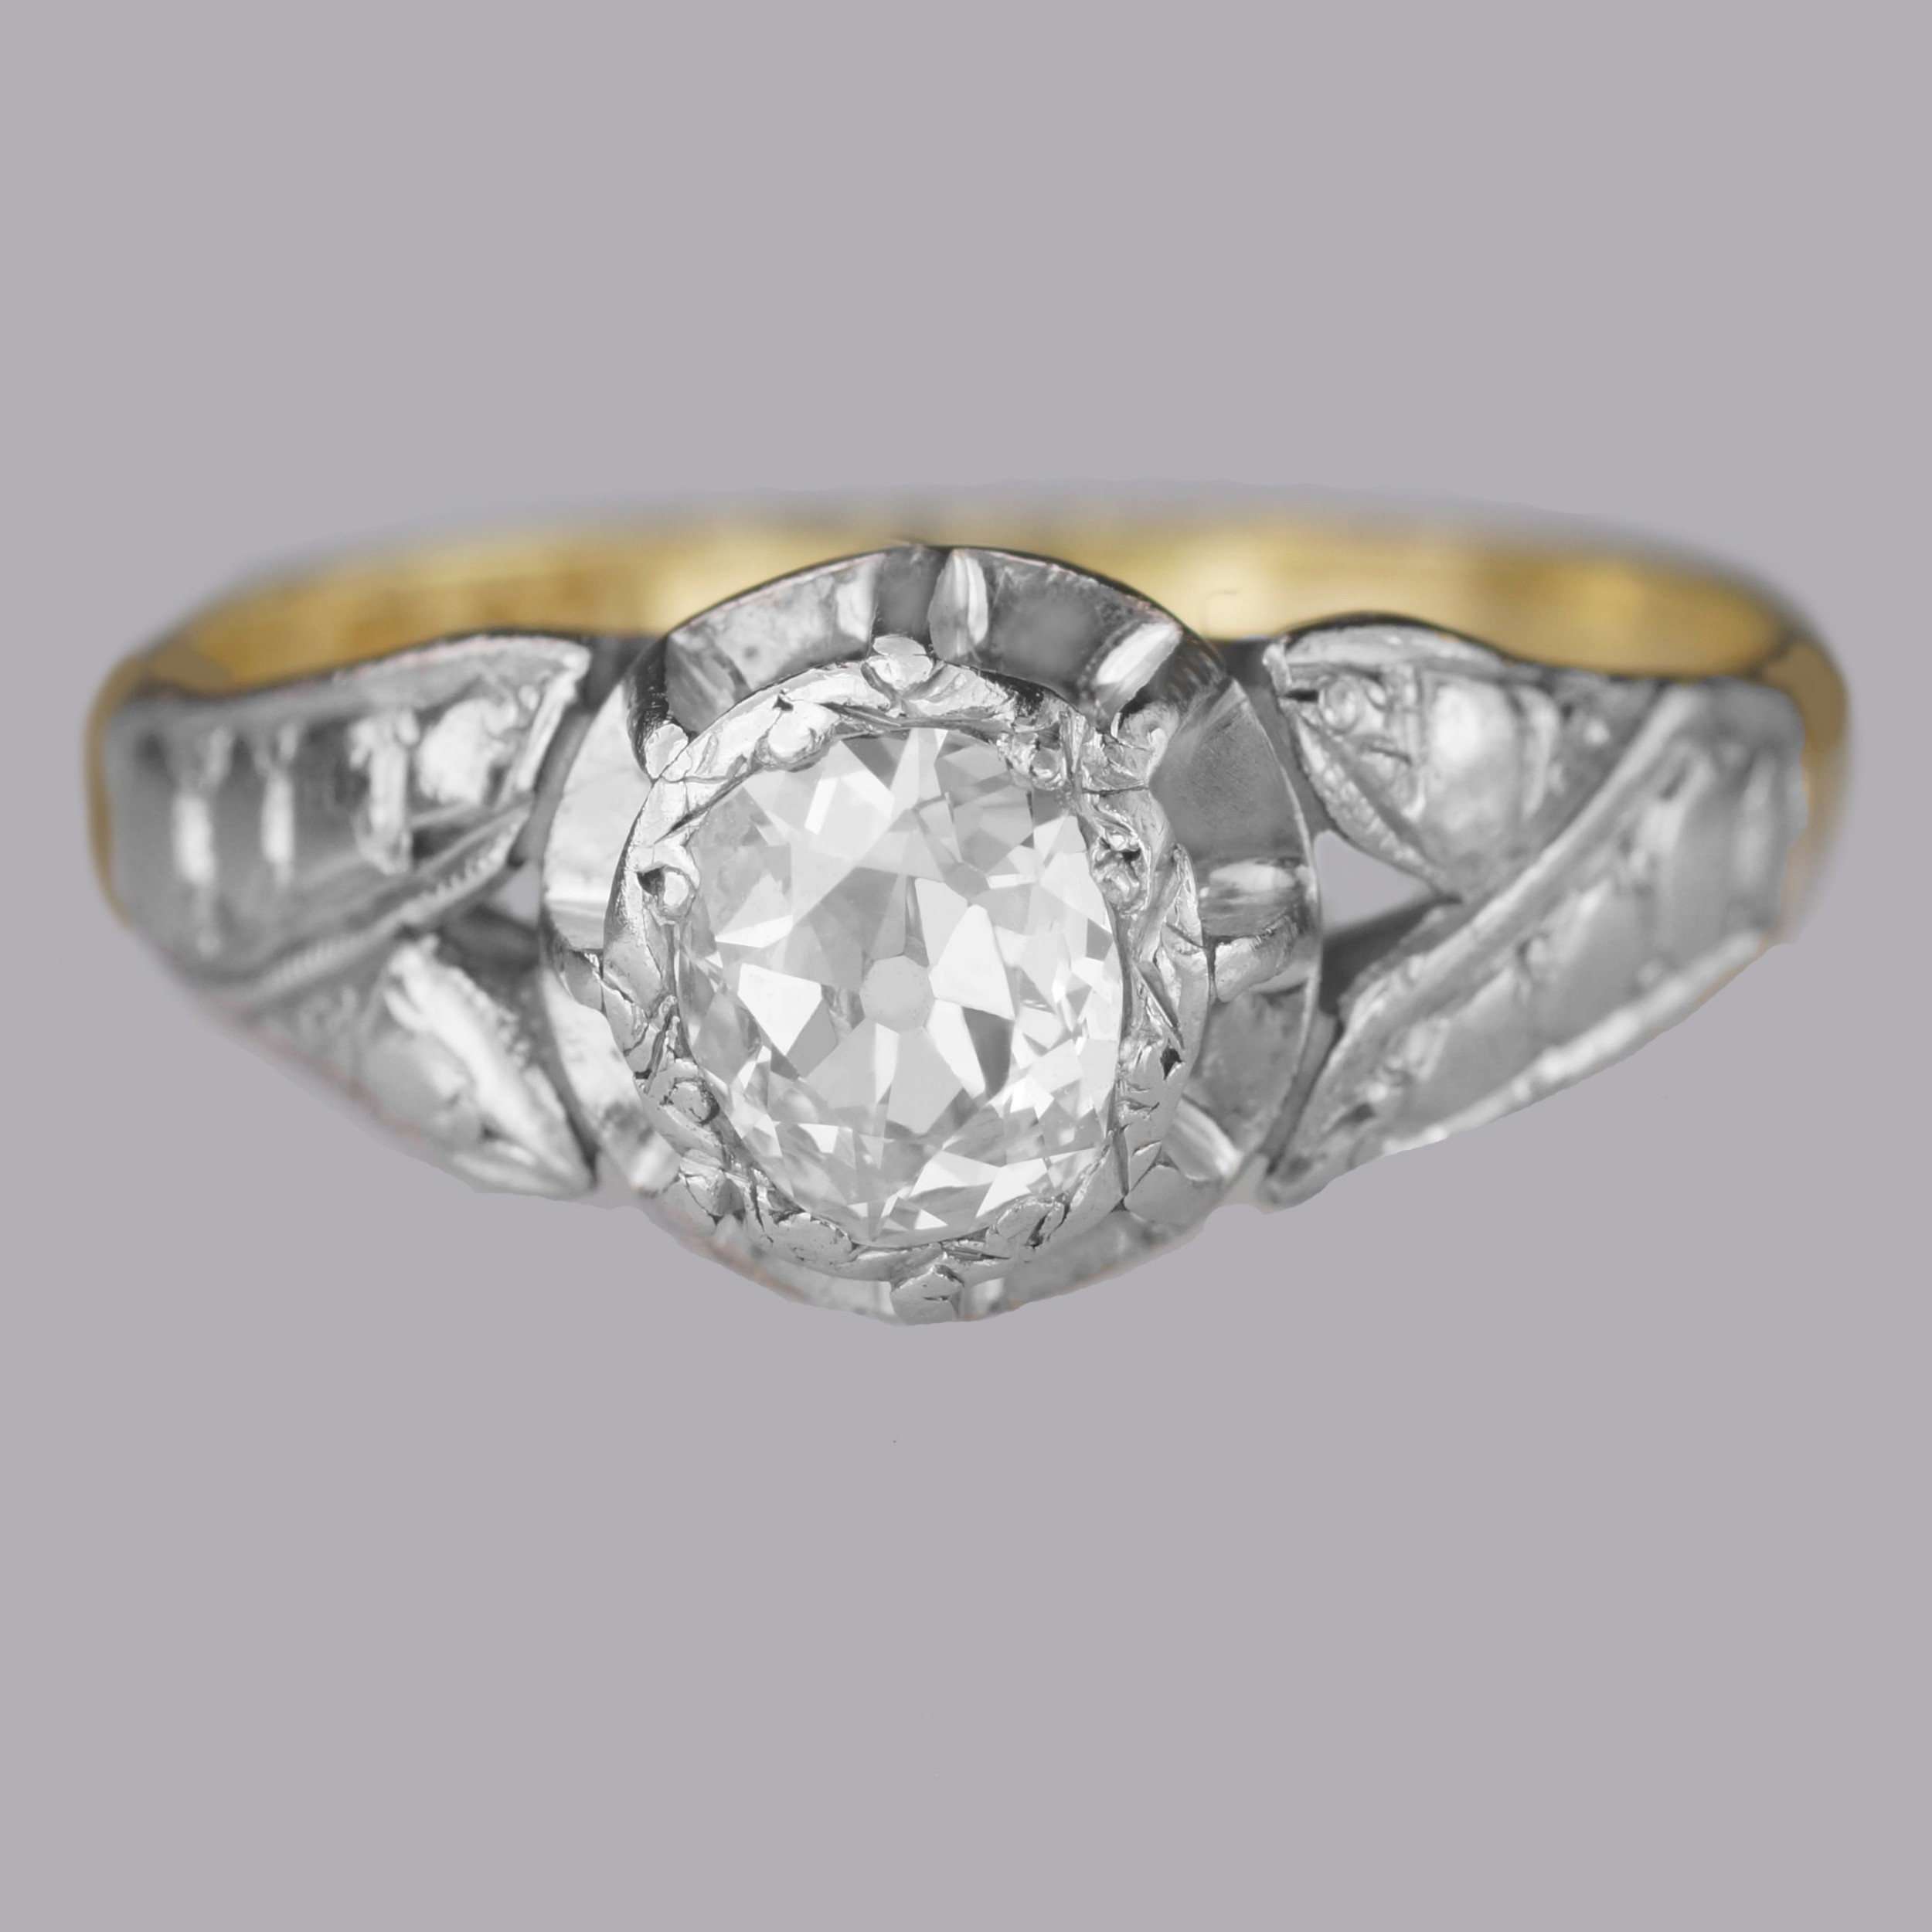 solitaire old cut diamond ring antique 18ct gold plat 1920's engagement ring